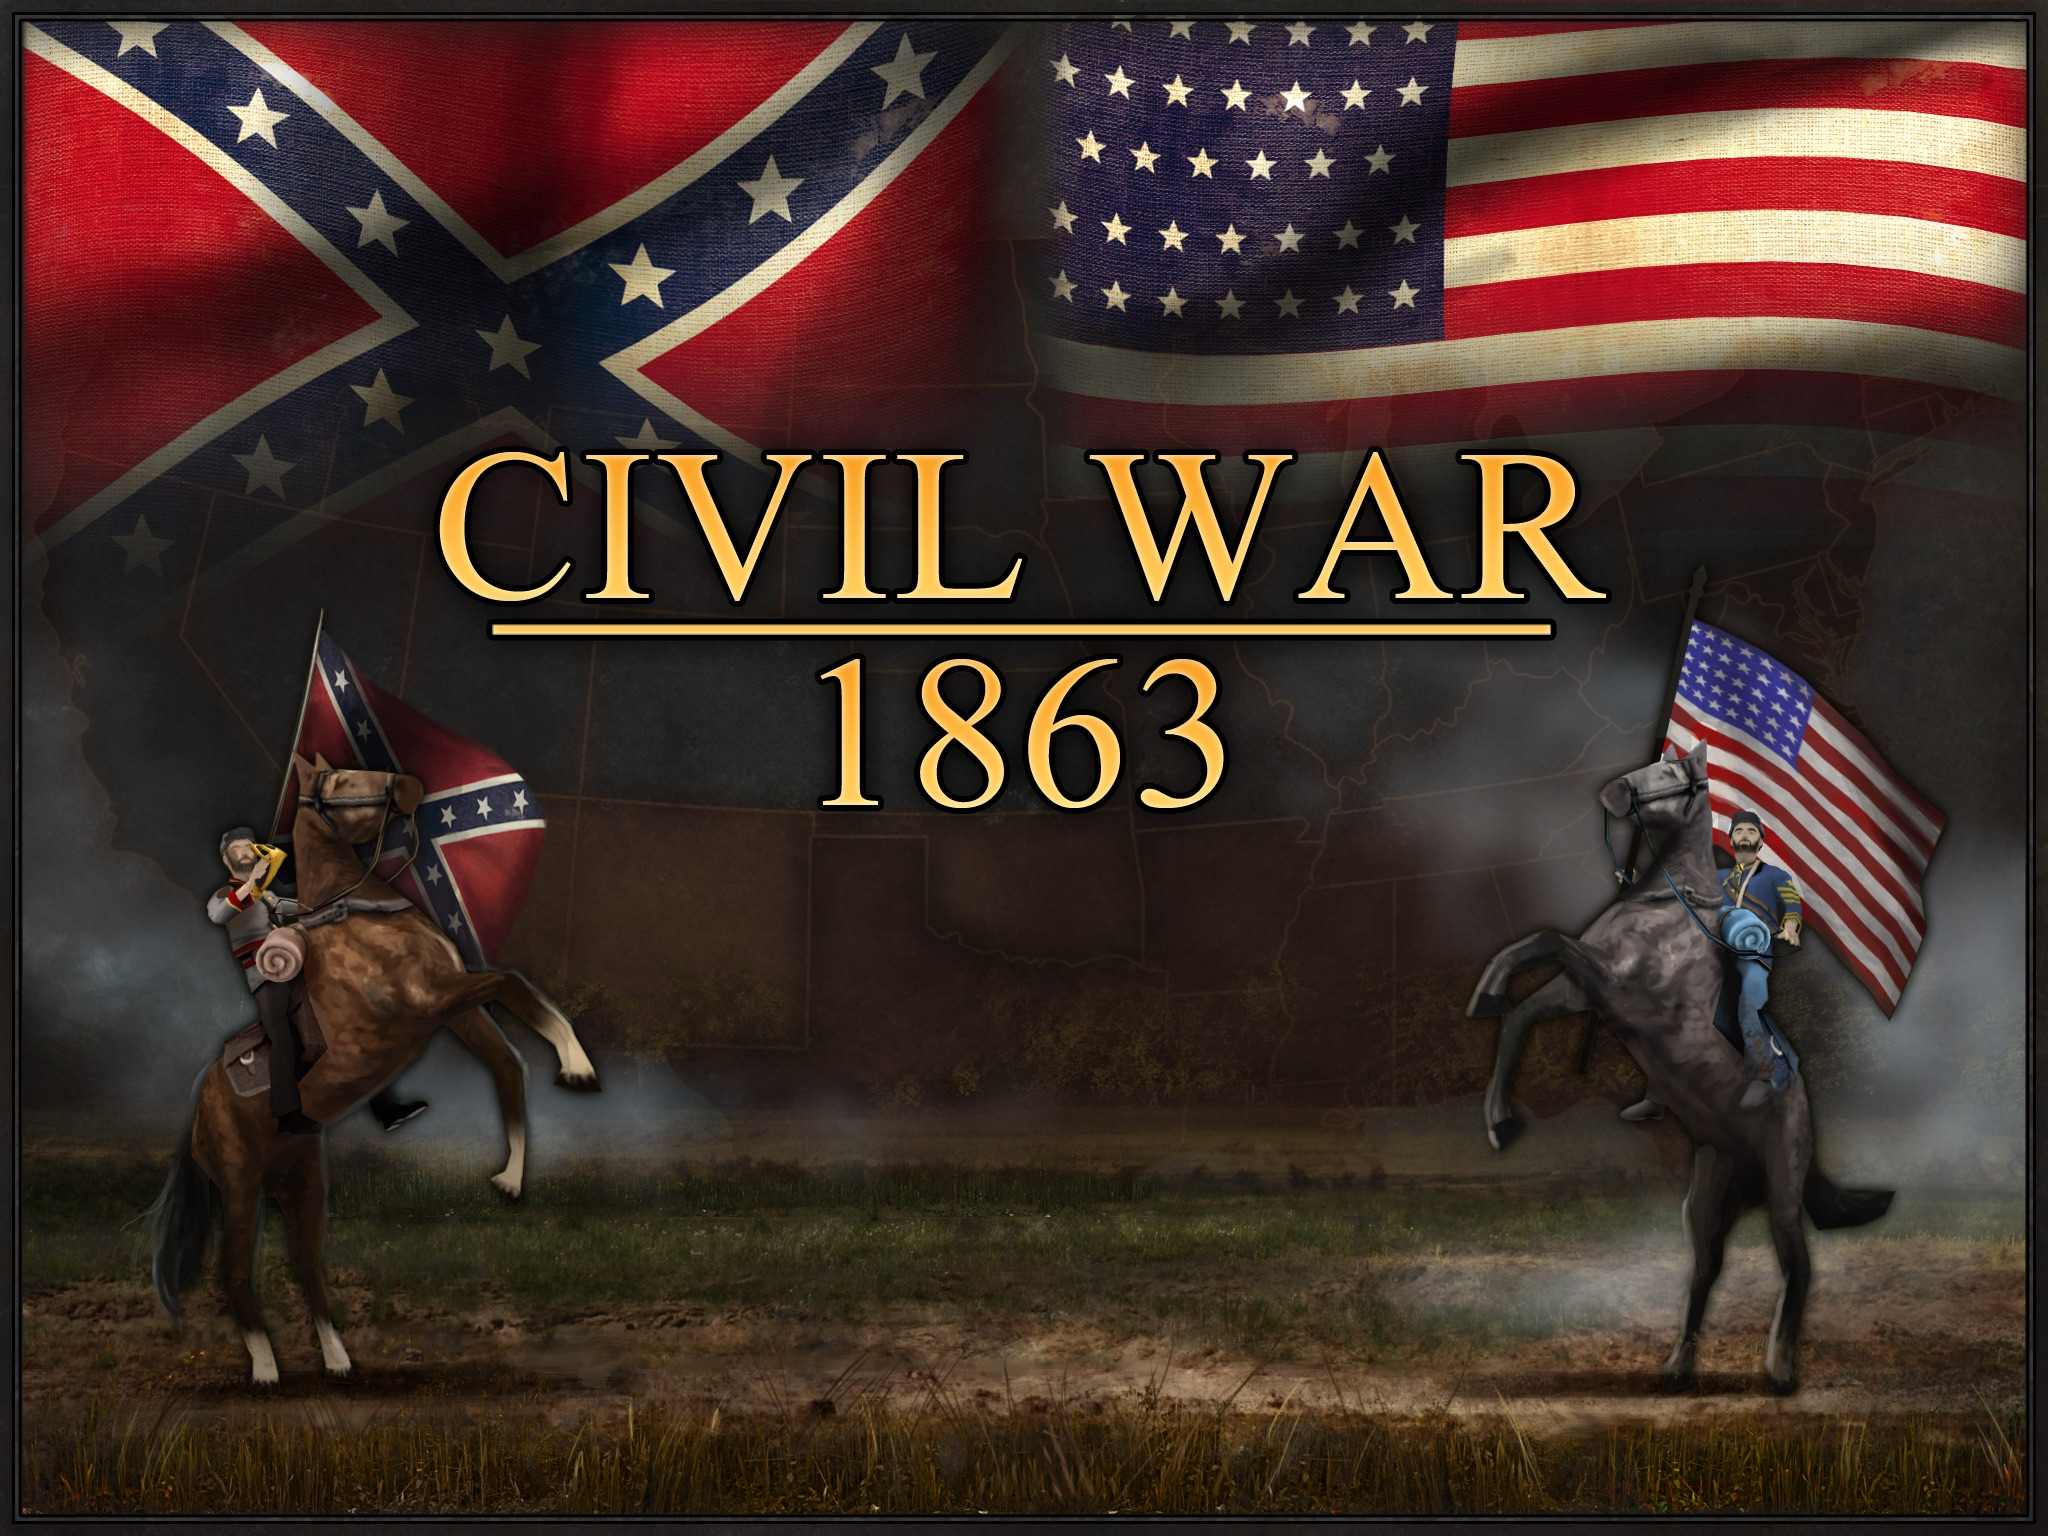 Apple bans games and apps featuring the confederate flag update apple bans games and apps featuring the confederate flag update some games being restored techcrunch biocorpaavc Choice Image